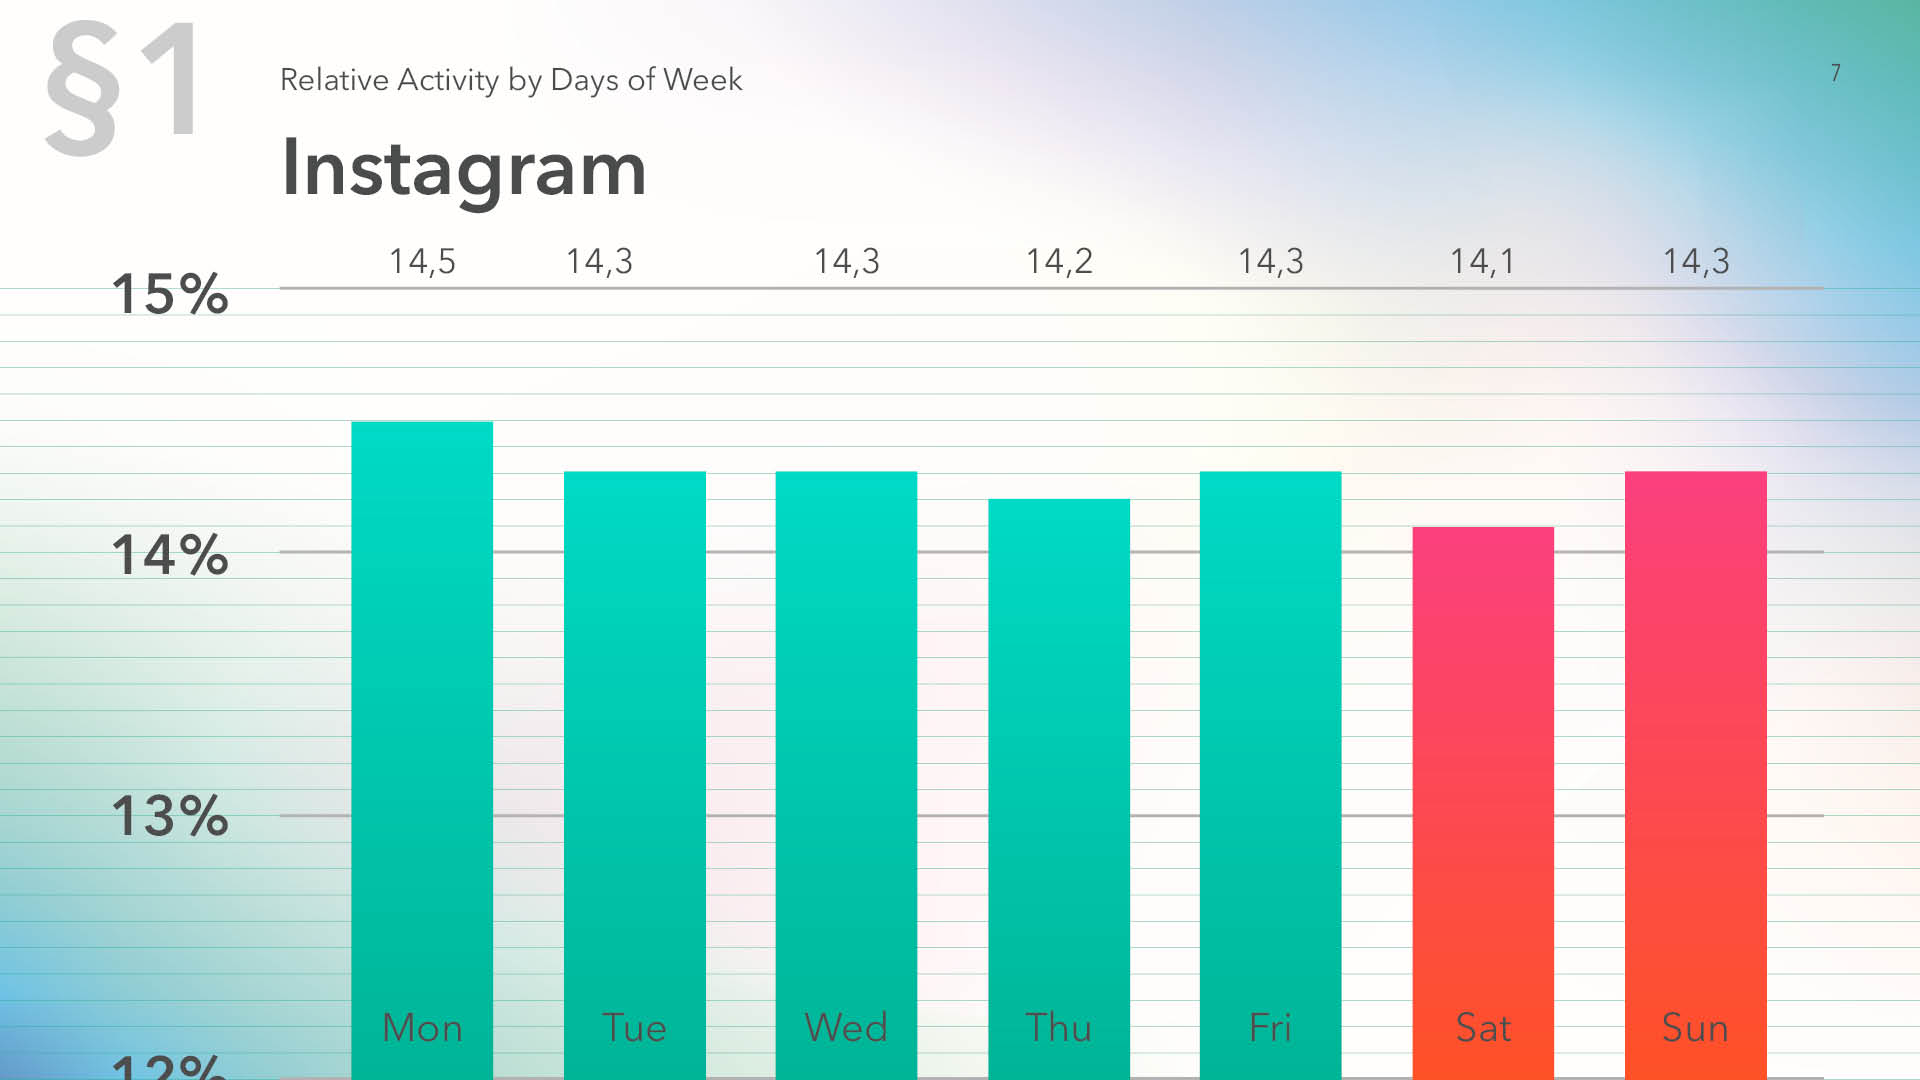 Relative activity on Instagram by days of week, data for 2019